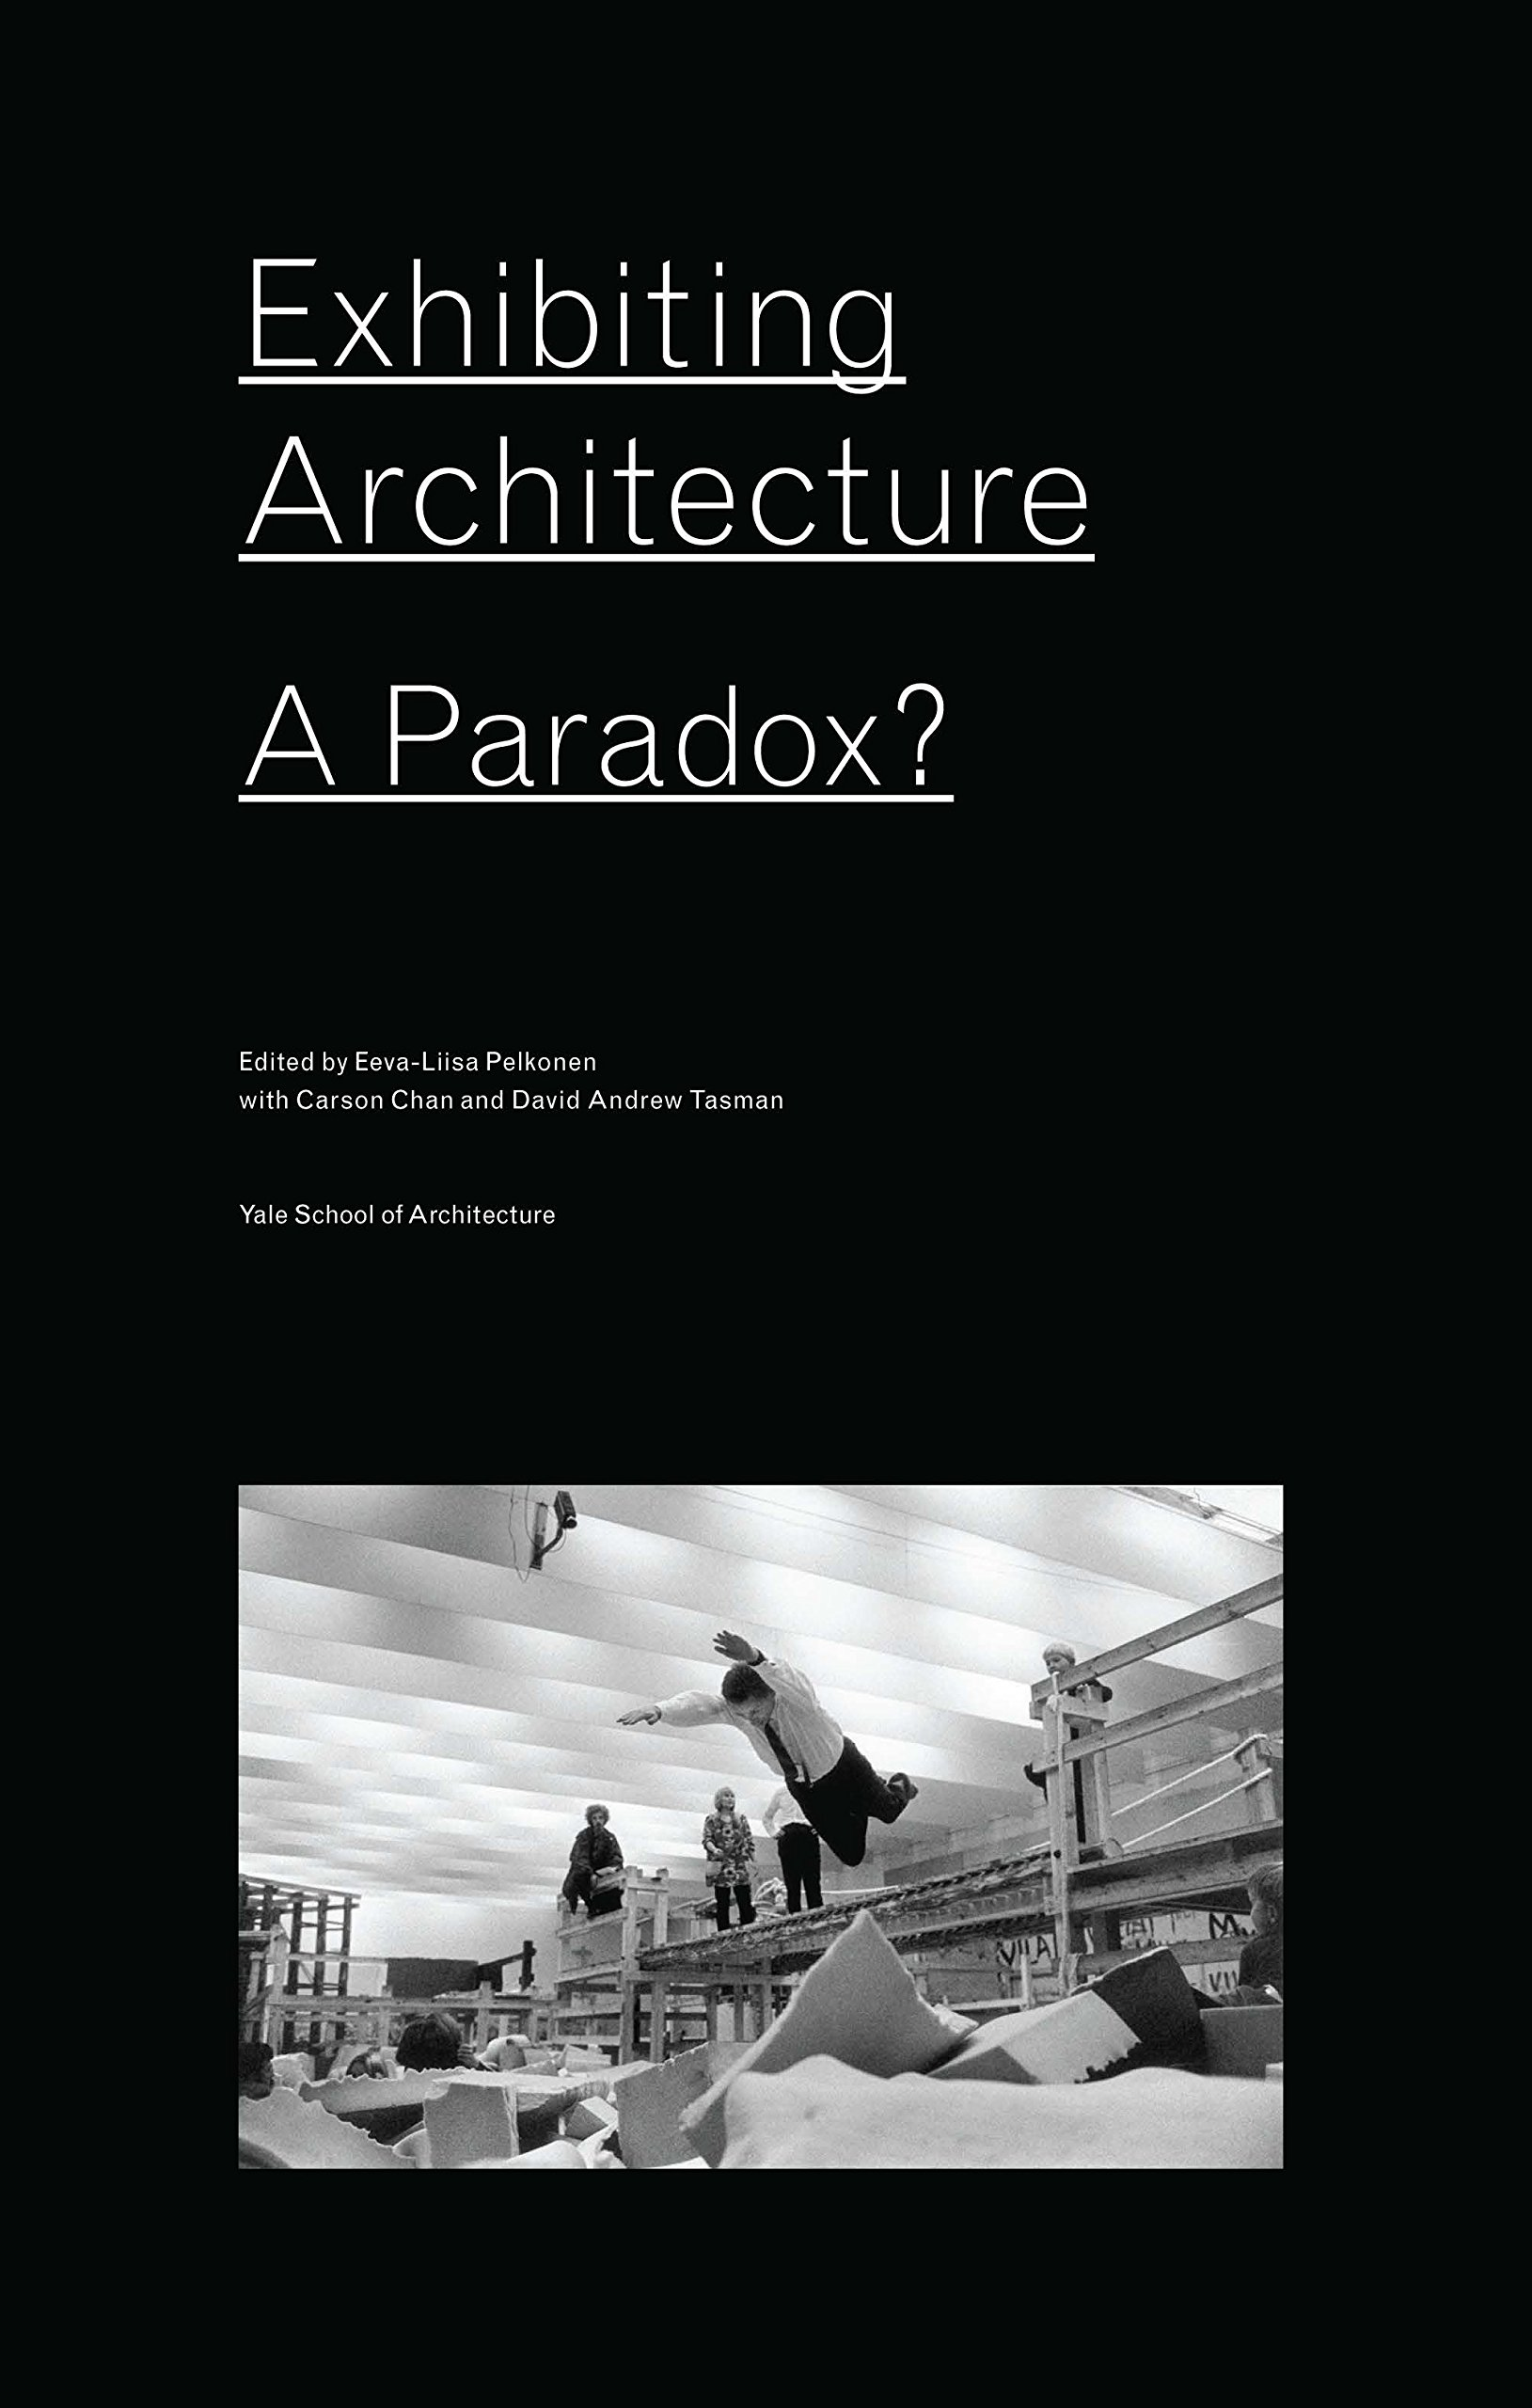 Exhibiting Architecture A Paradox?